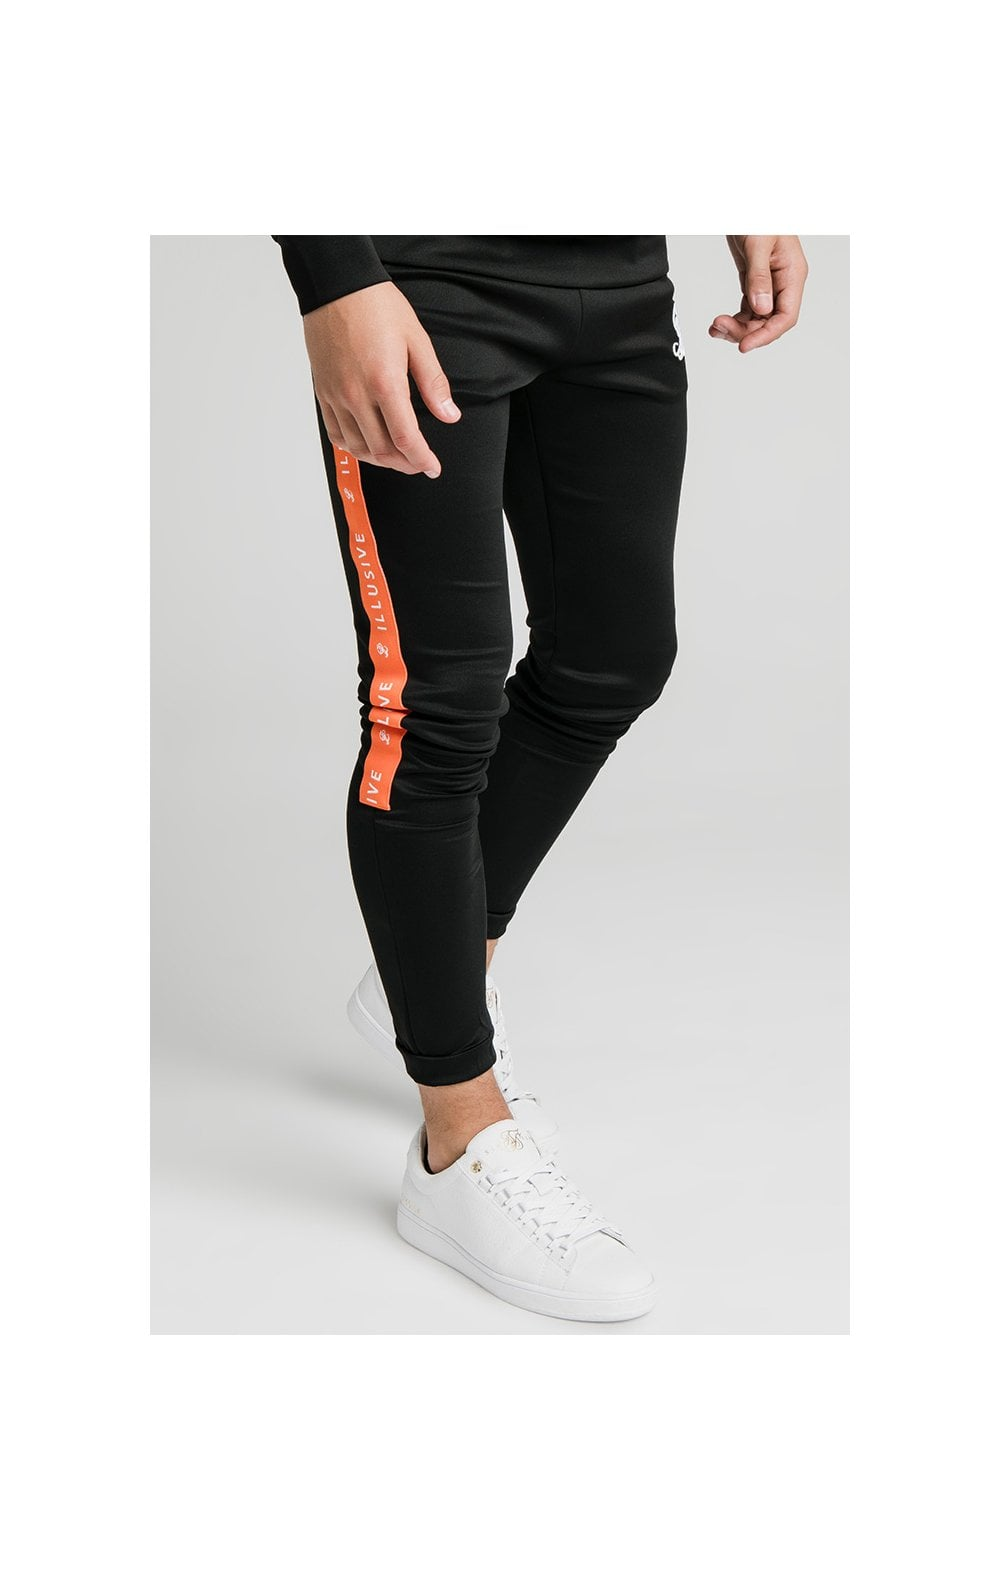 Illusive London Tape Joggers - Black (1)